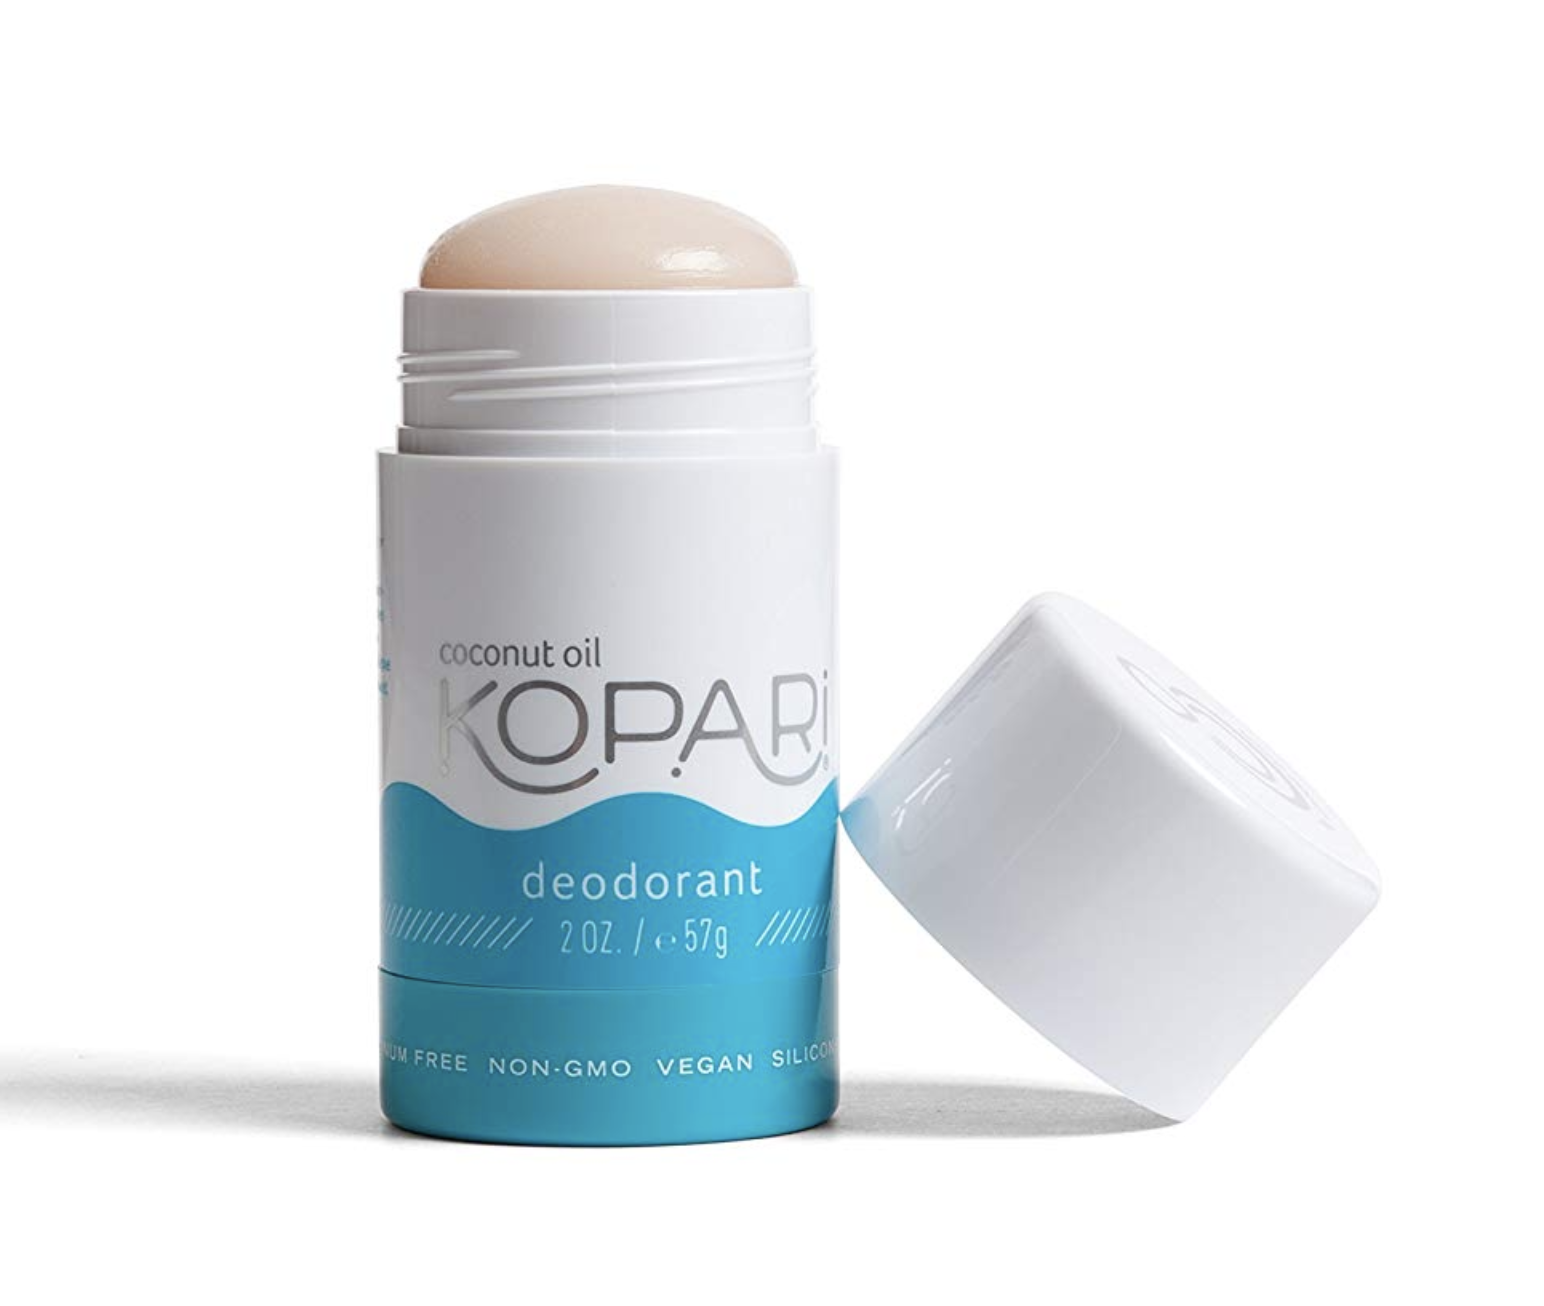 I tried this natural deodorant on the hottest day of the